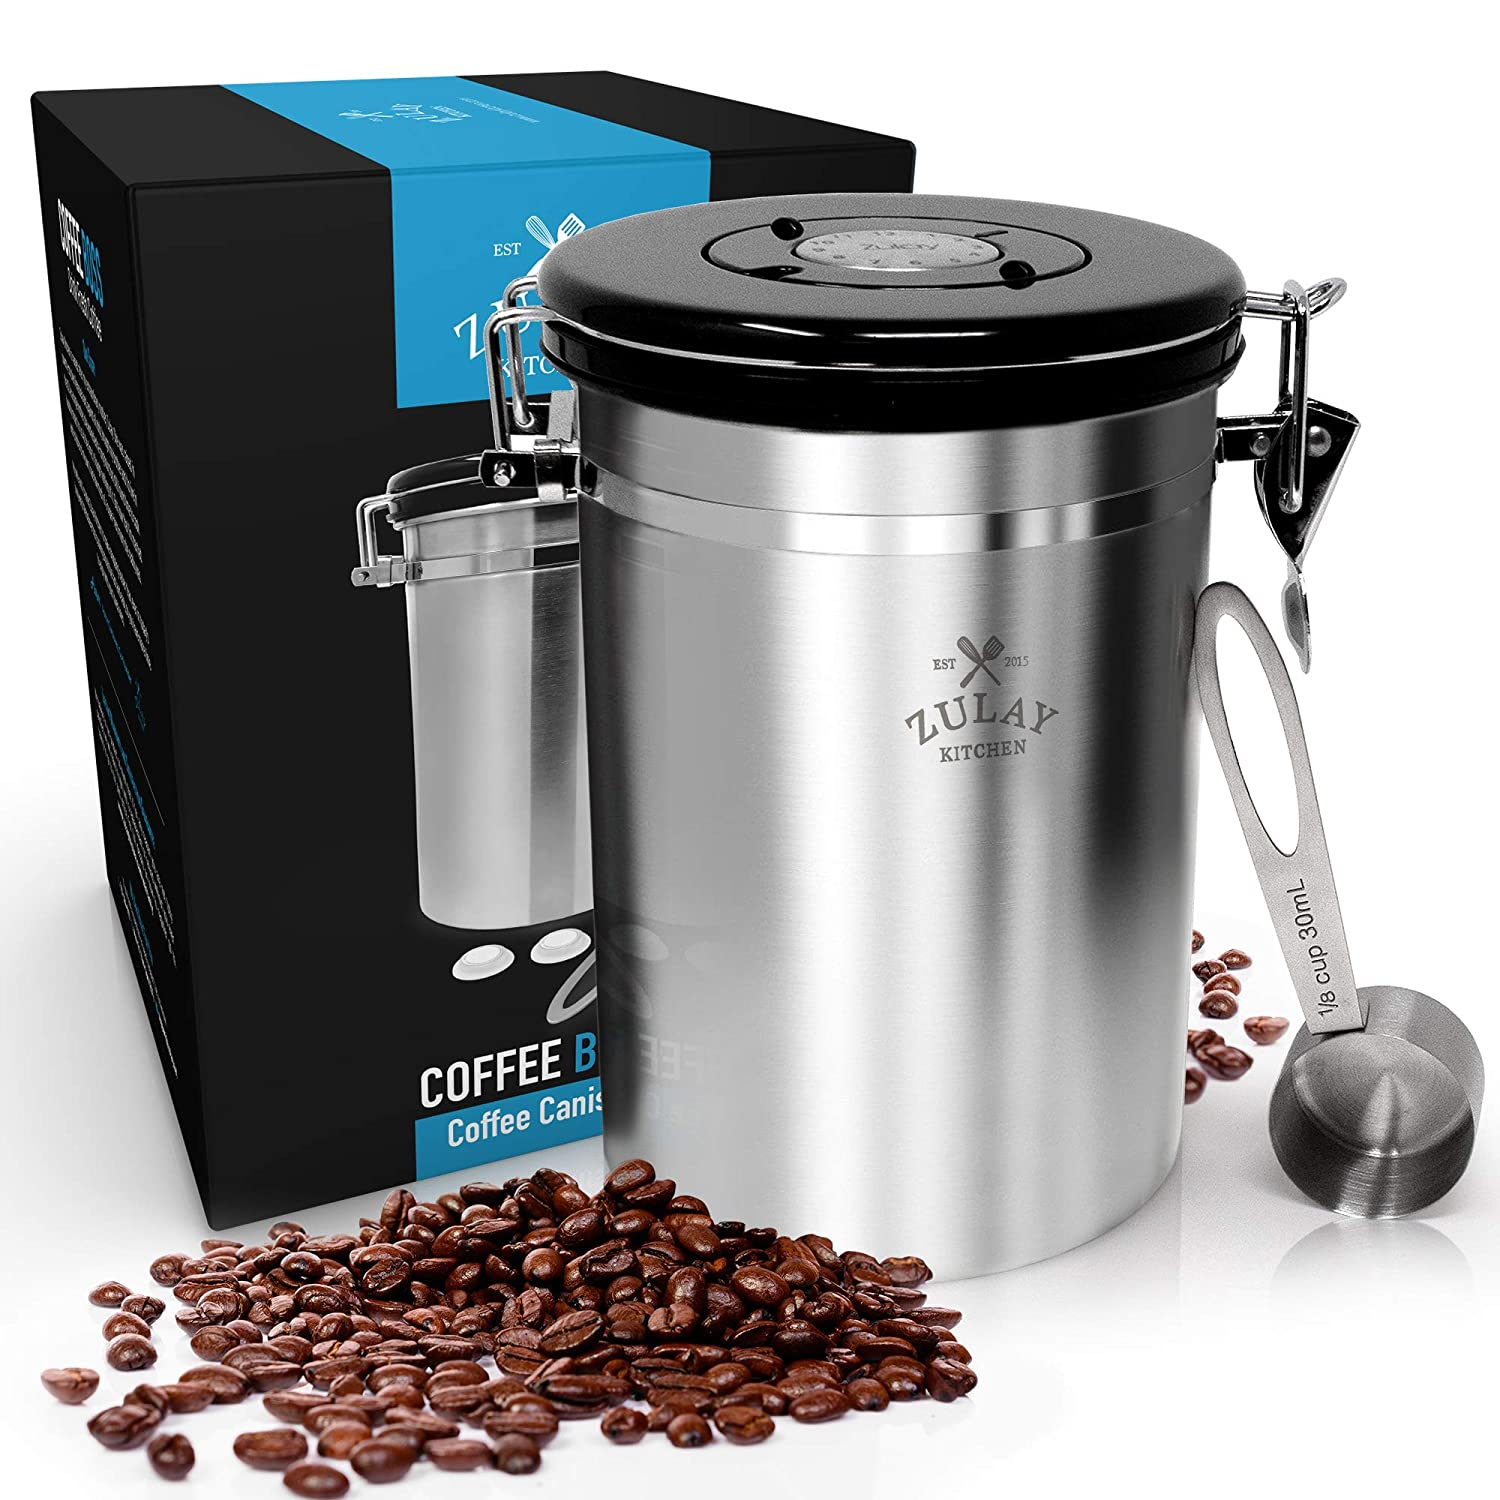 Ground Coffee Container Airtight Lid Coffee Boss Coffee Canister CO2 Valve /& Free Scoop Large Stainless Steel Coffee Bean Storage Container 64floz Best Storage for Fresh Coffee Beans by Zulay